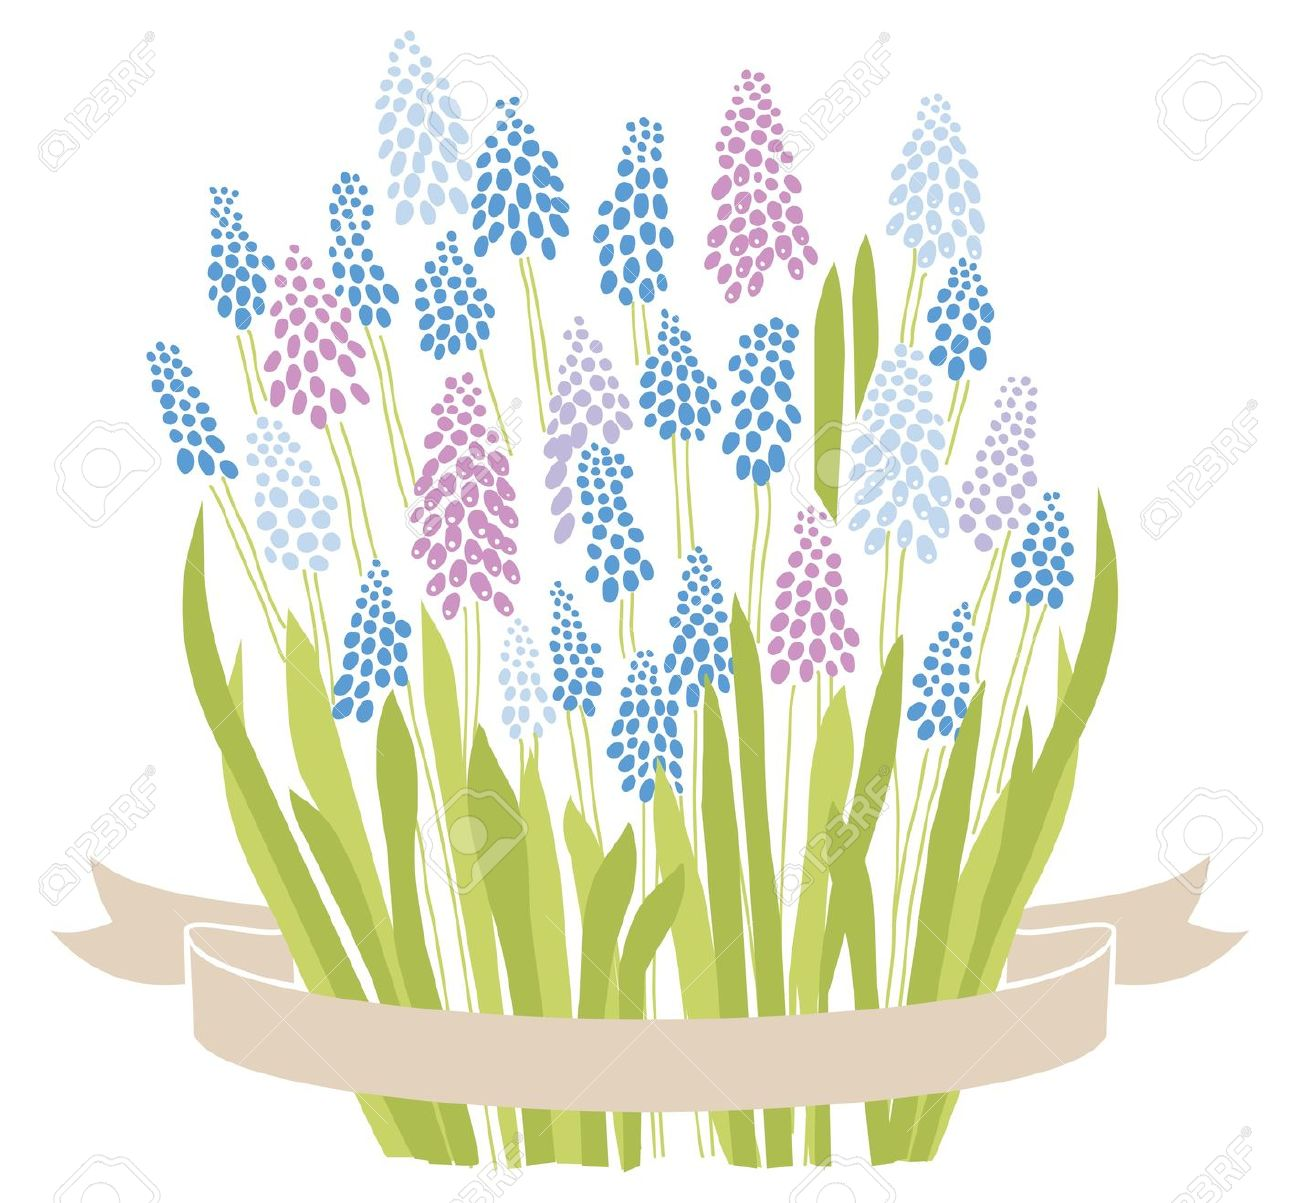 Blue Grape Hyacinth Muscari Spring Flower Bouquet Royalty Free.